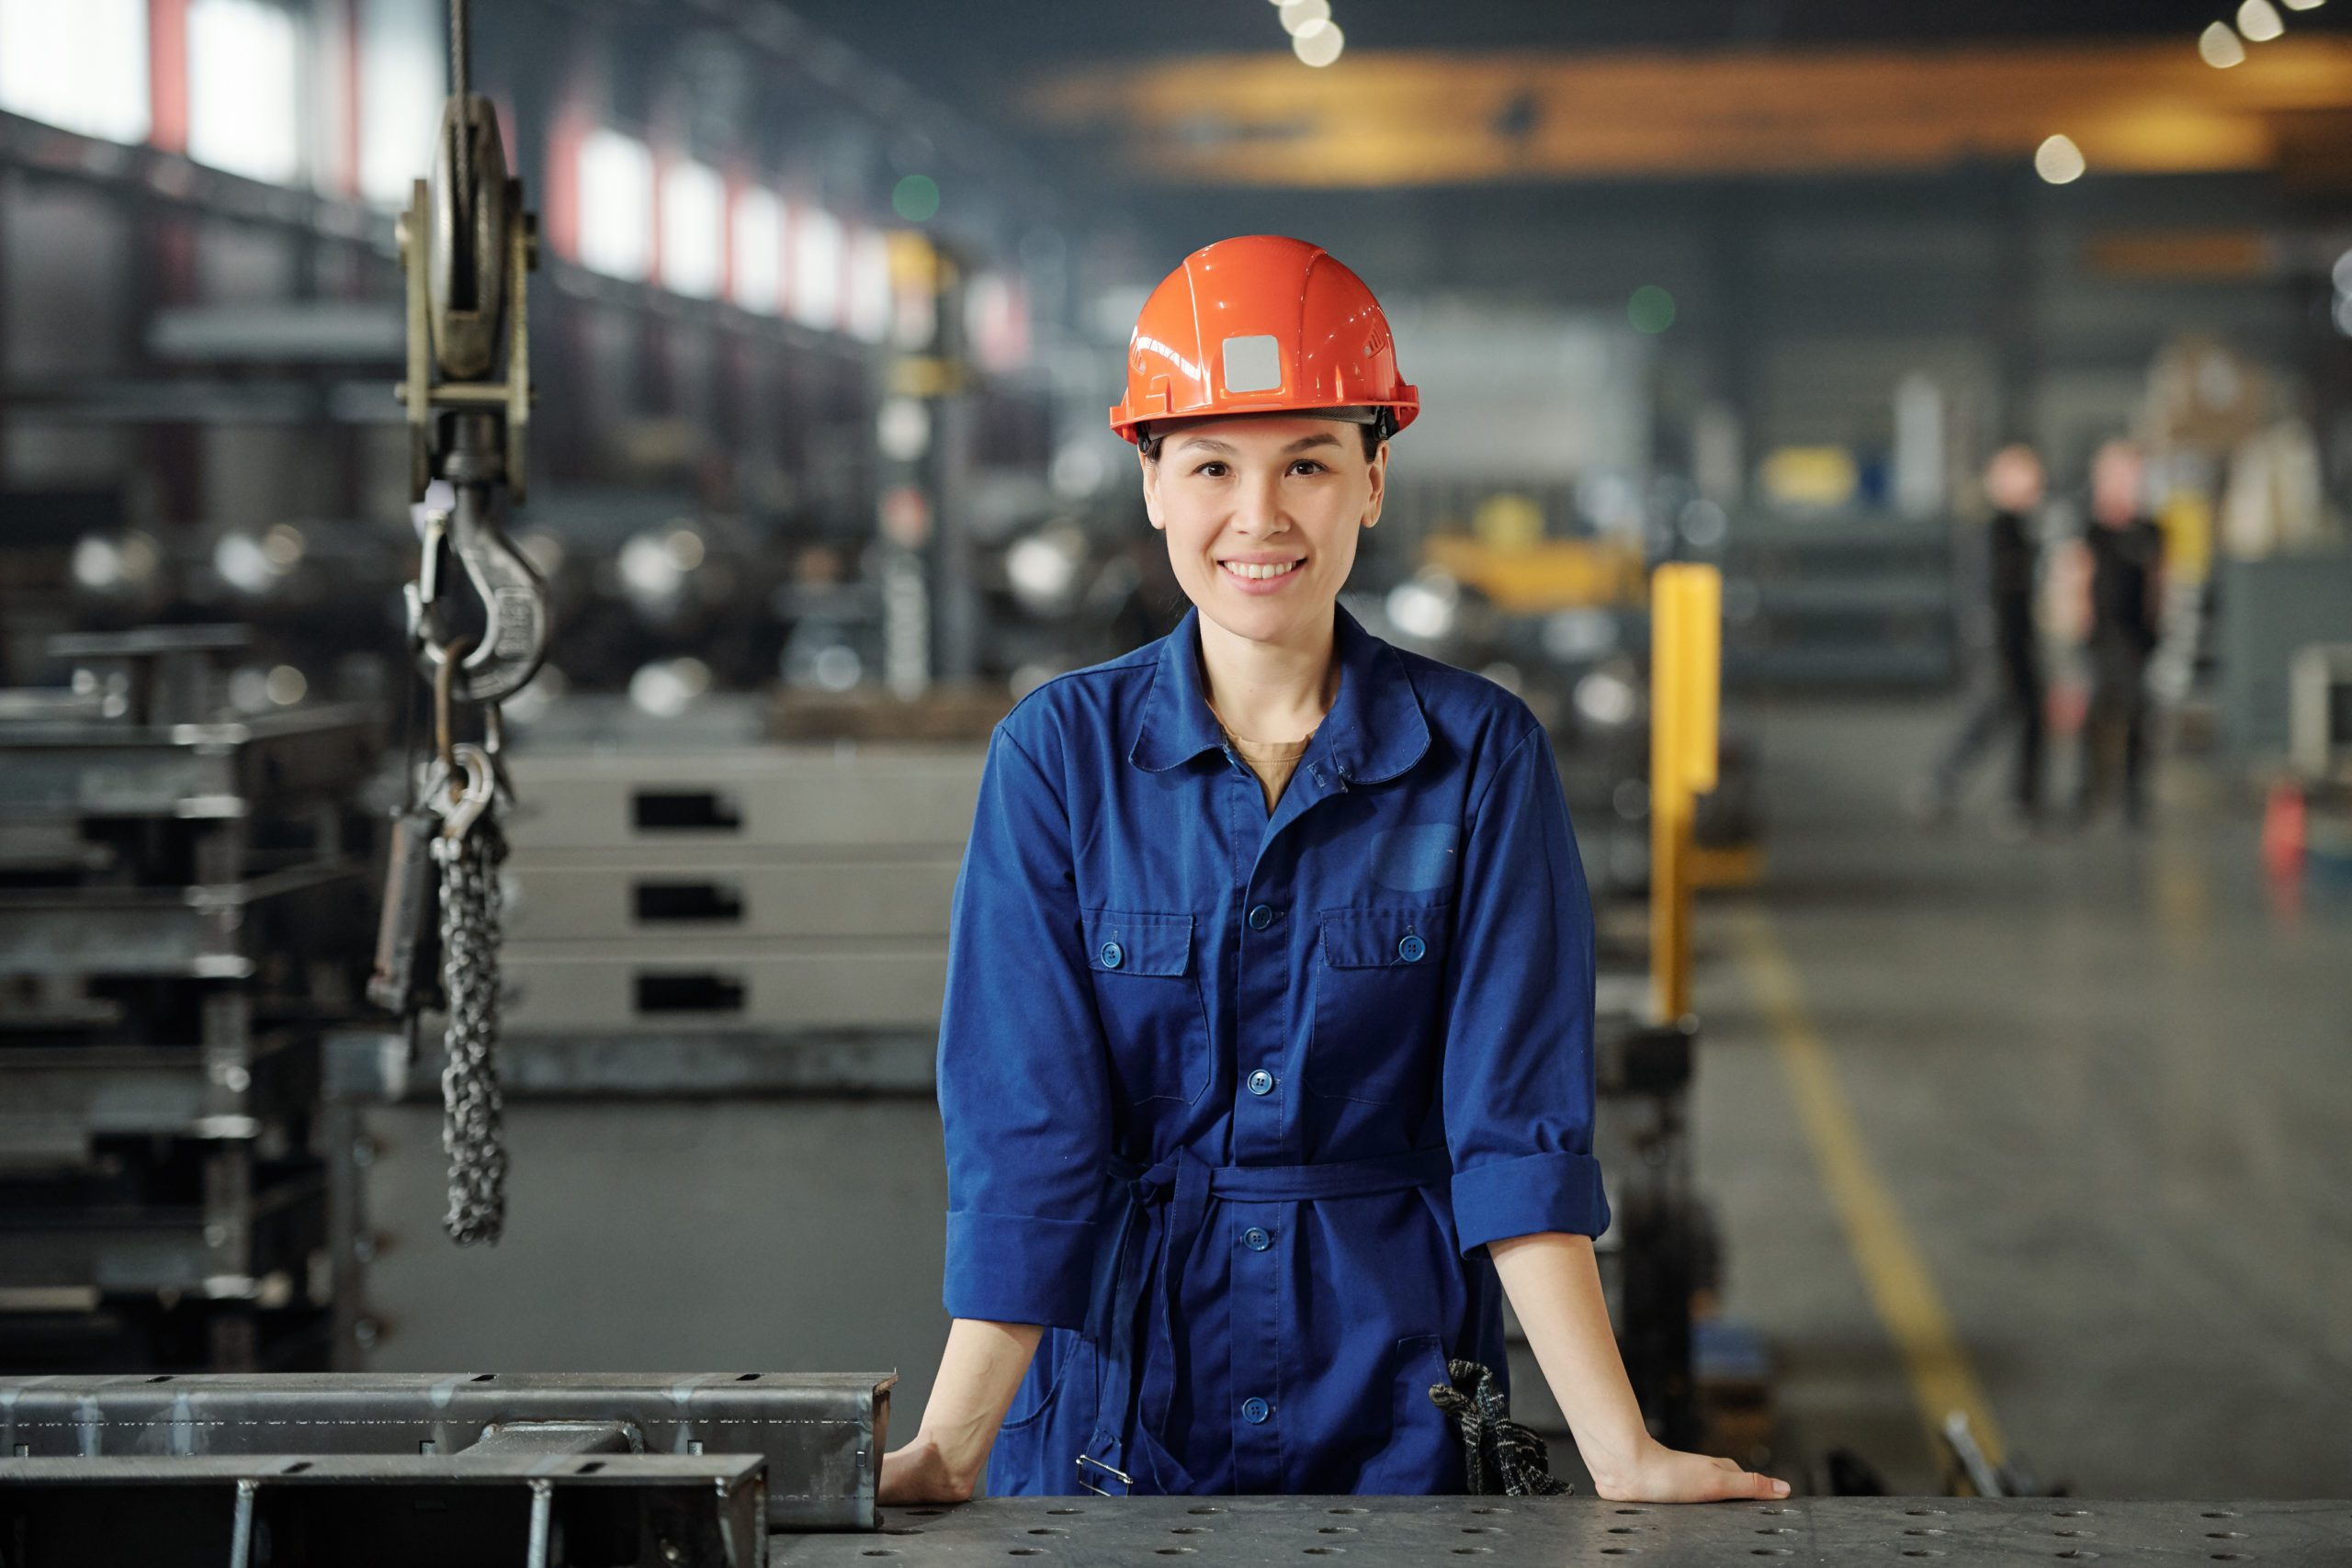 Portrait of smiling young Asian metalworking specialist in blue overalls standing at desk in industrial shop